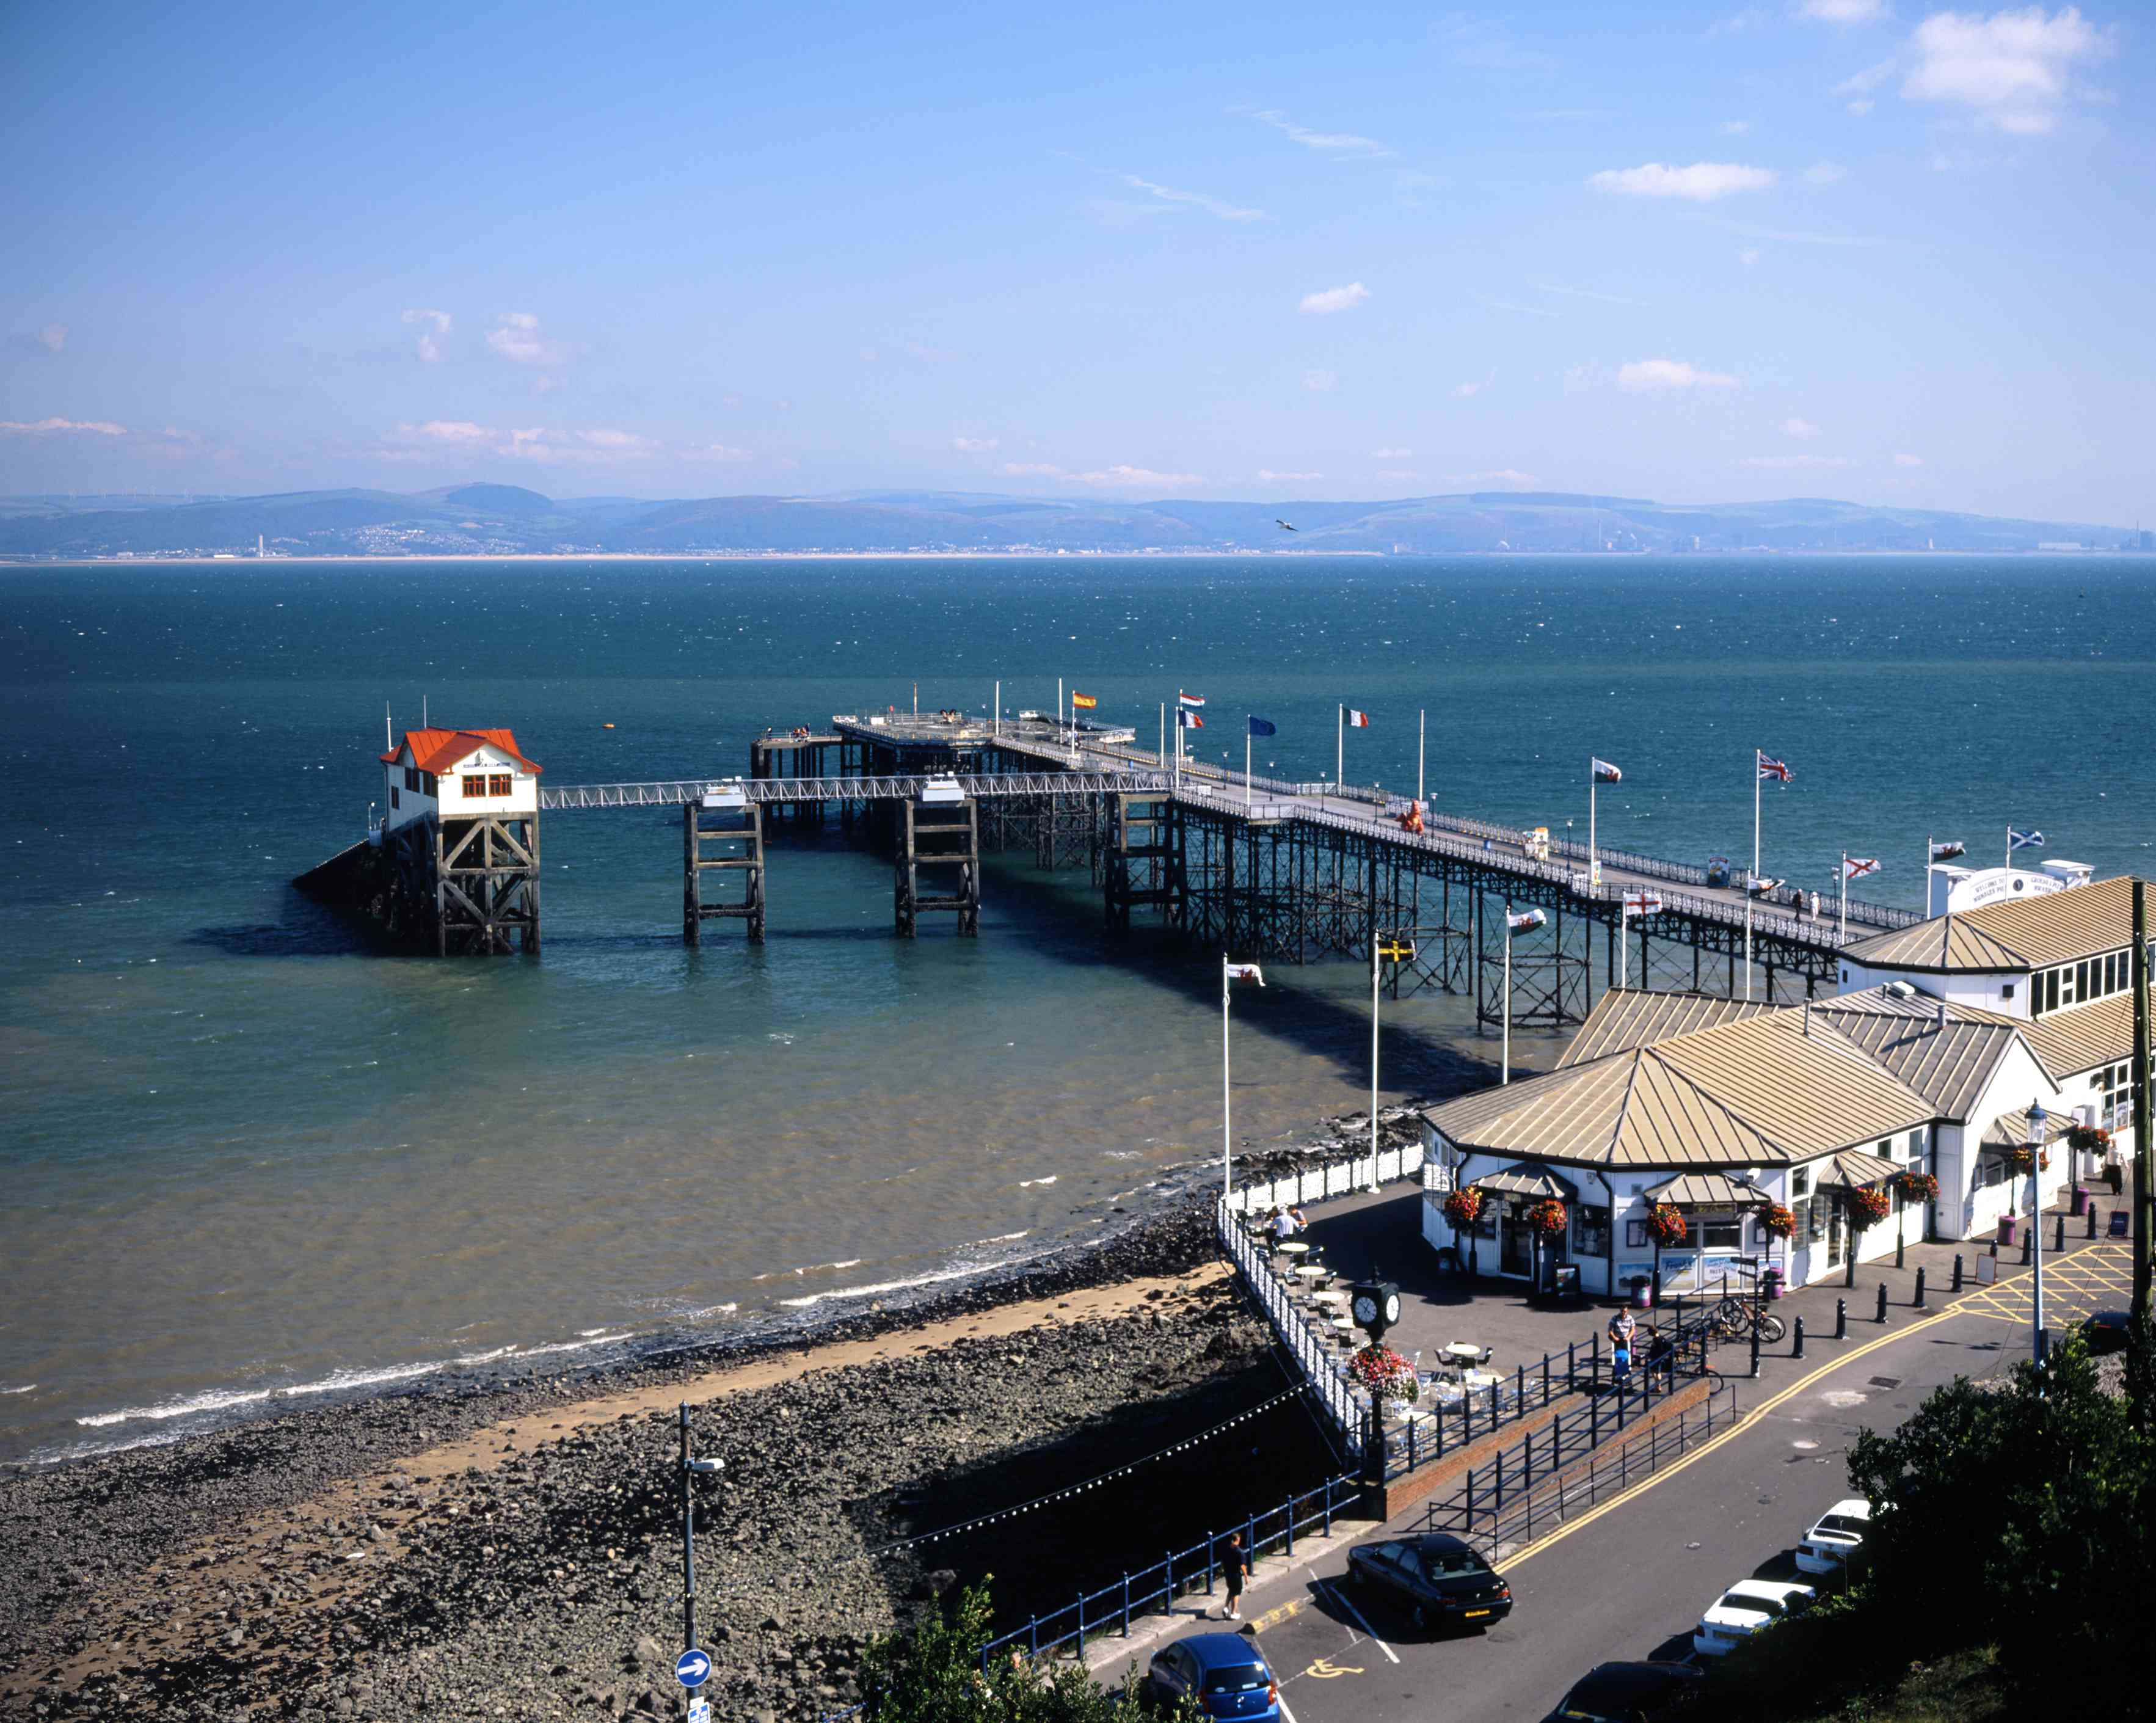 aerial view of a pier in wales